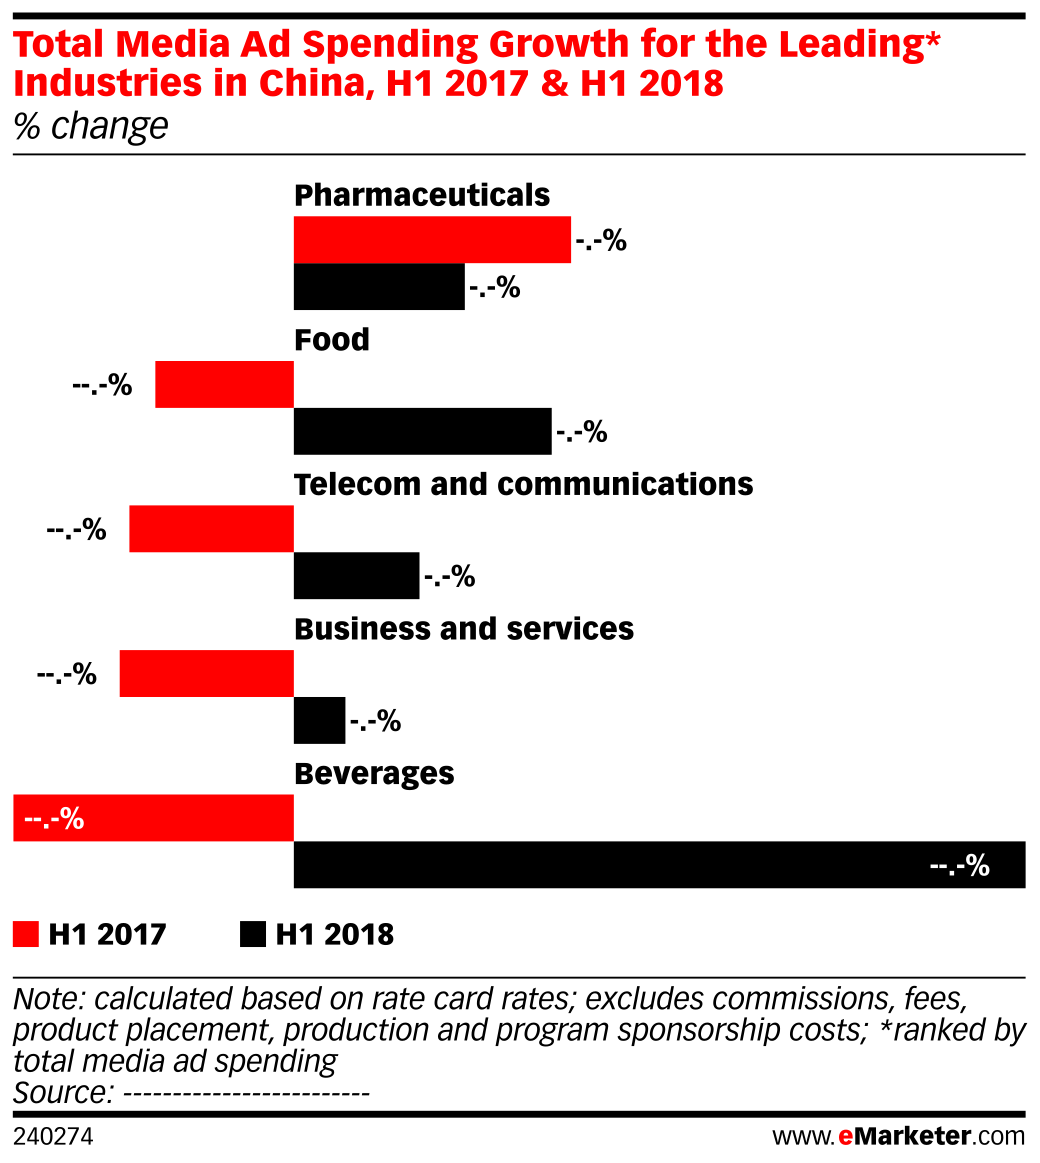 Total Media Ad Spending Growth for the Leading* Industries in China, H1 2017 & H1 2018 (% change)